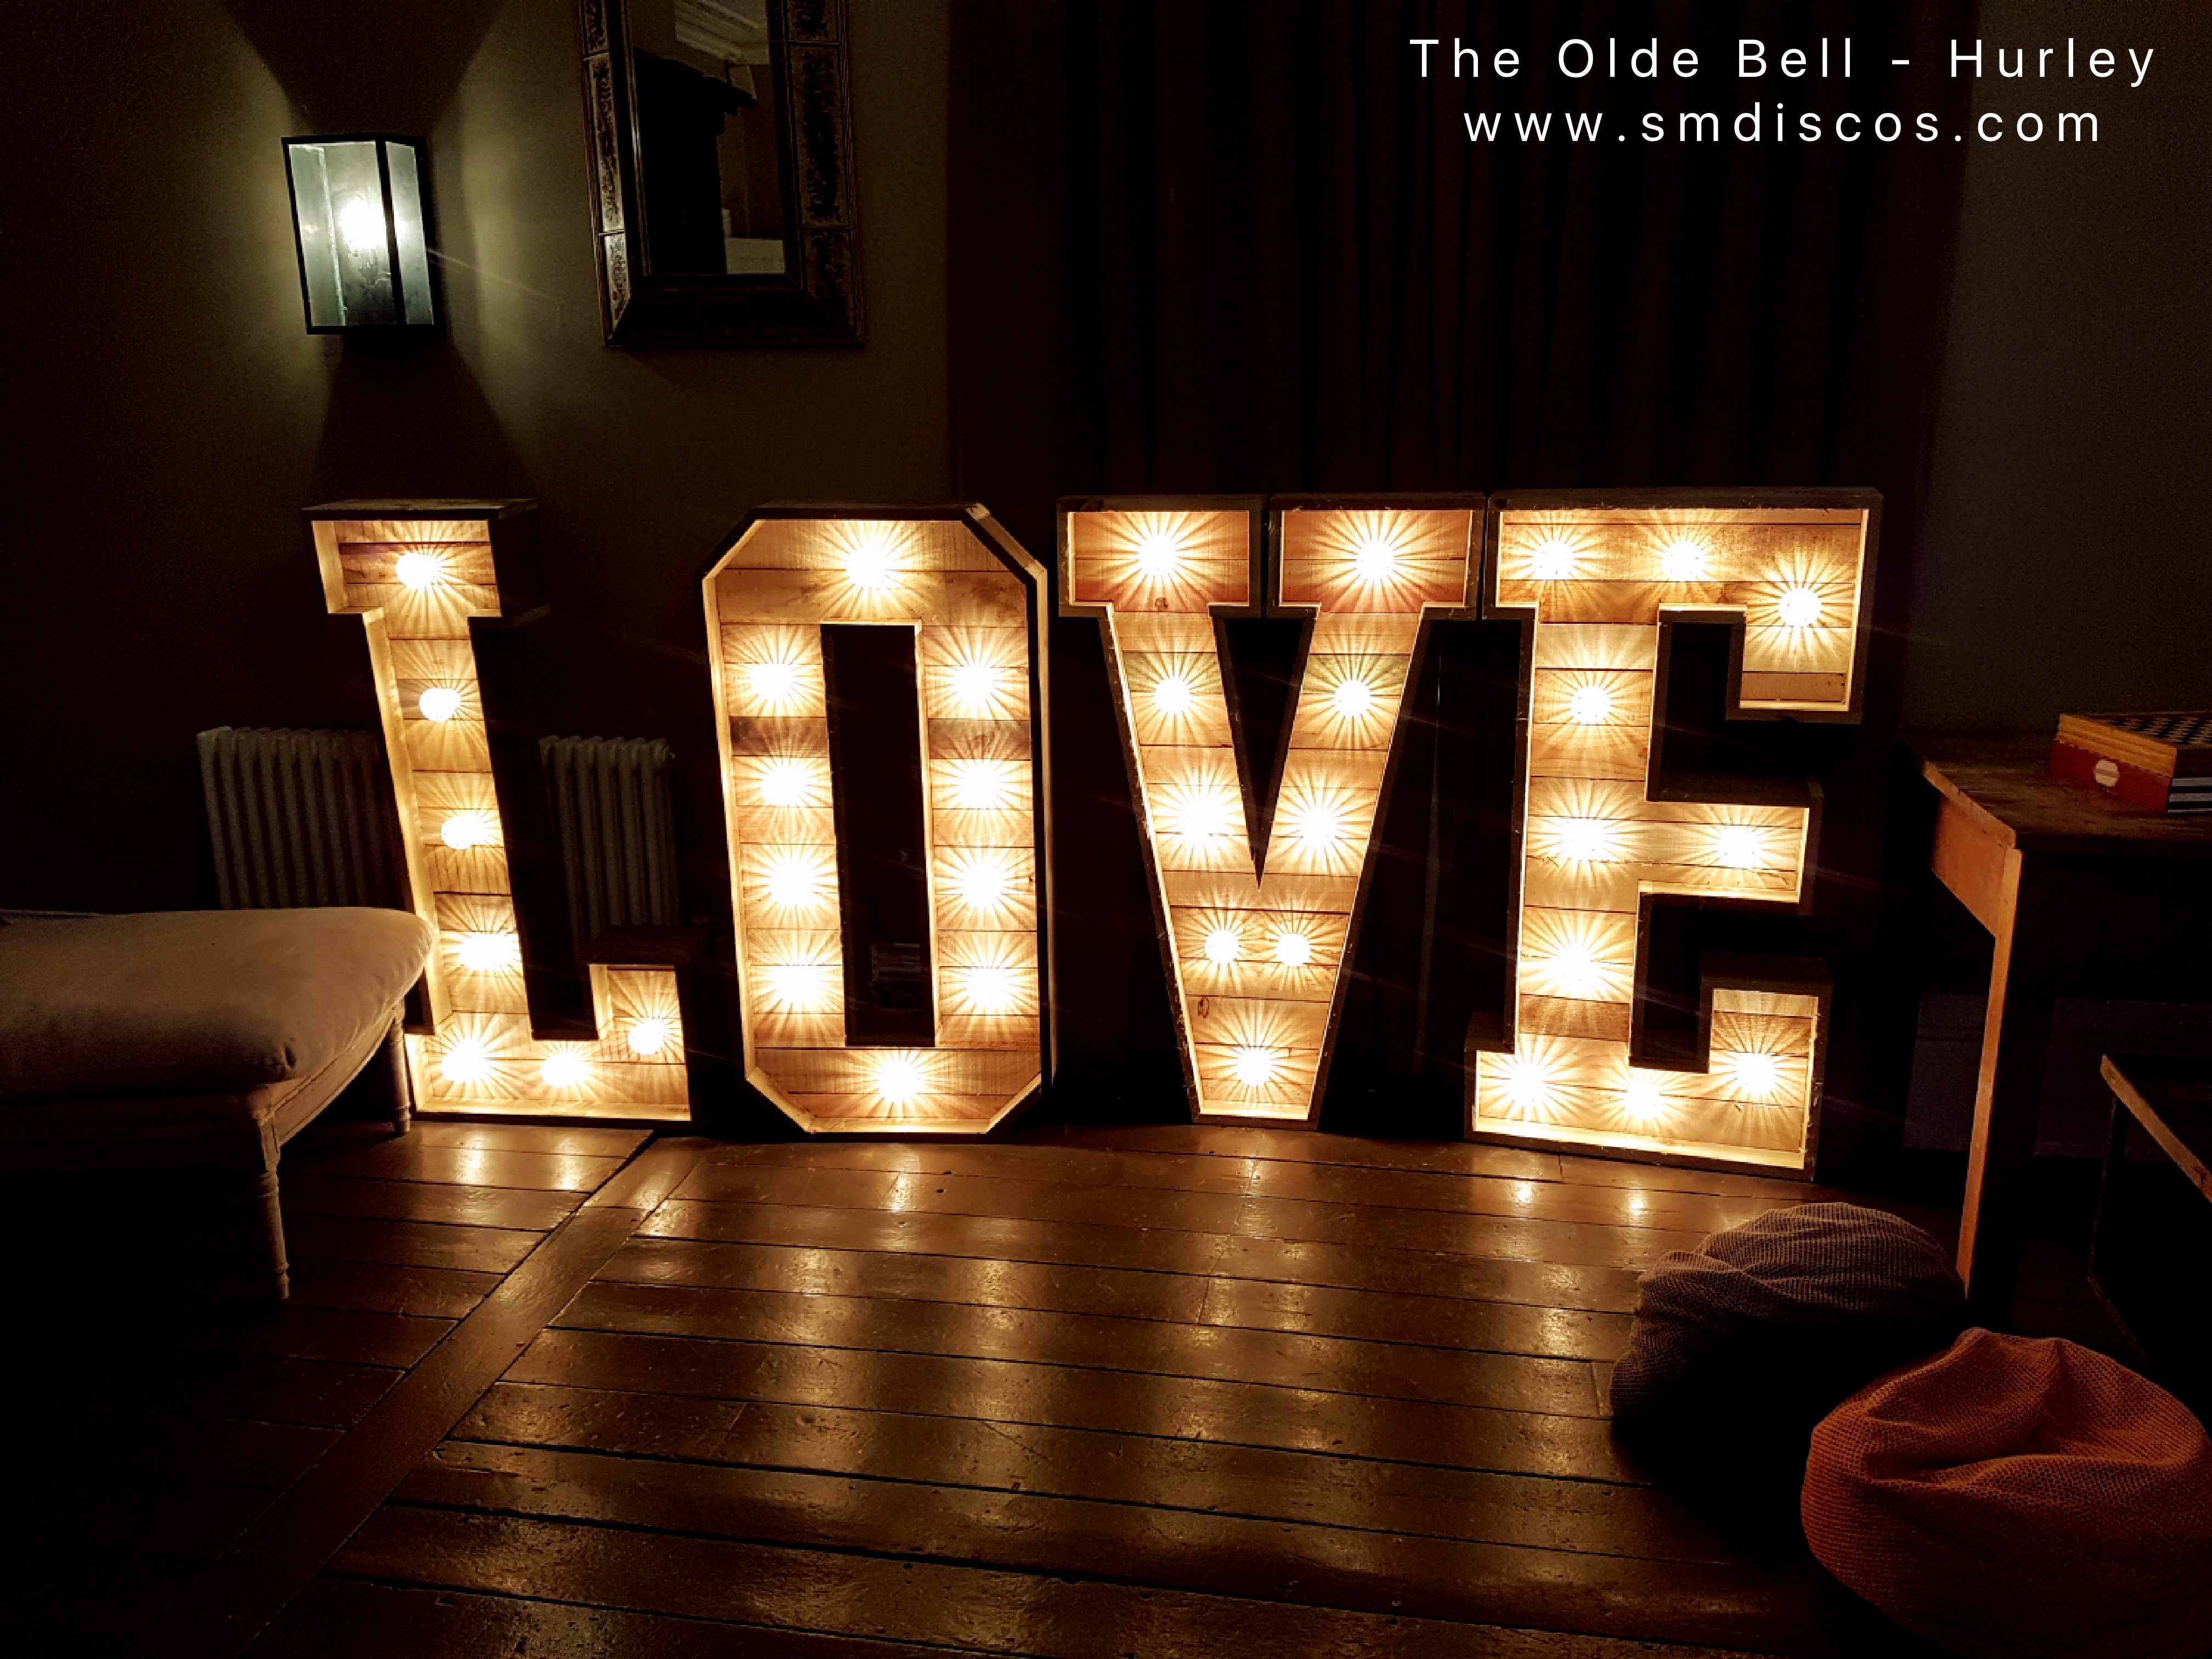 The Olde Bell in Hurley Love Letters